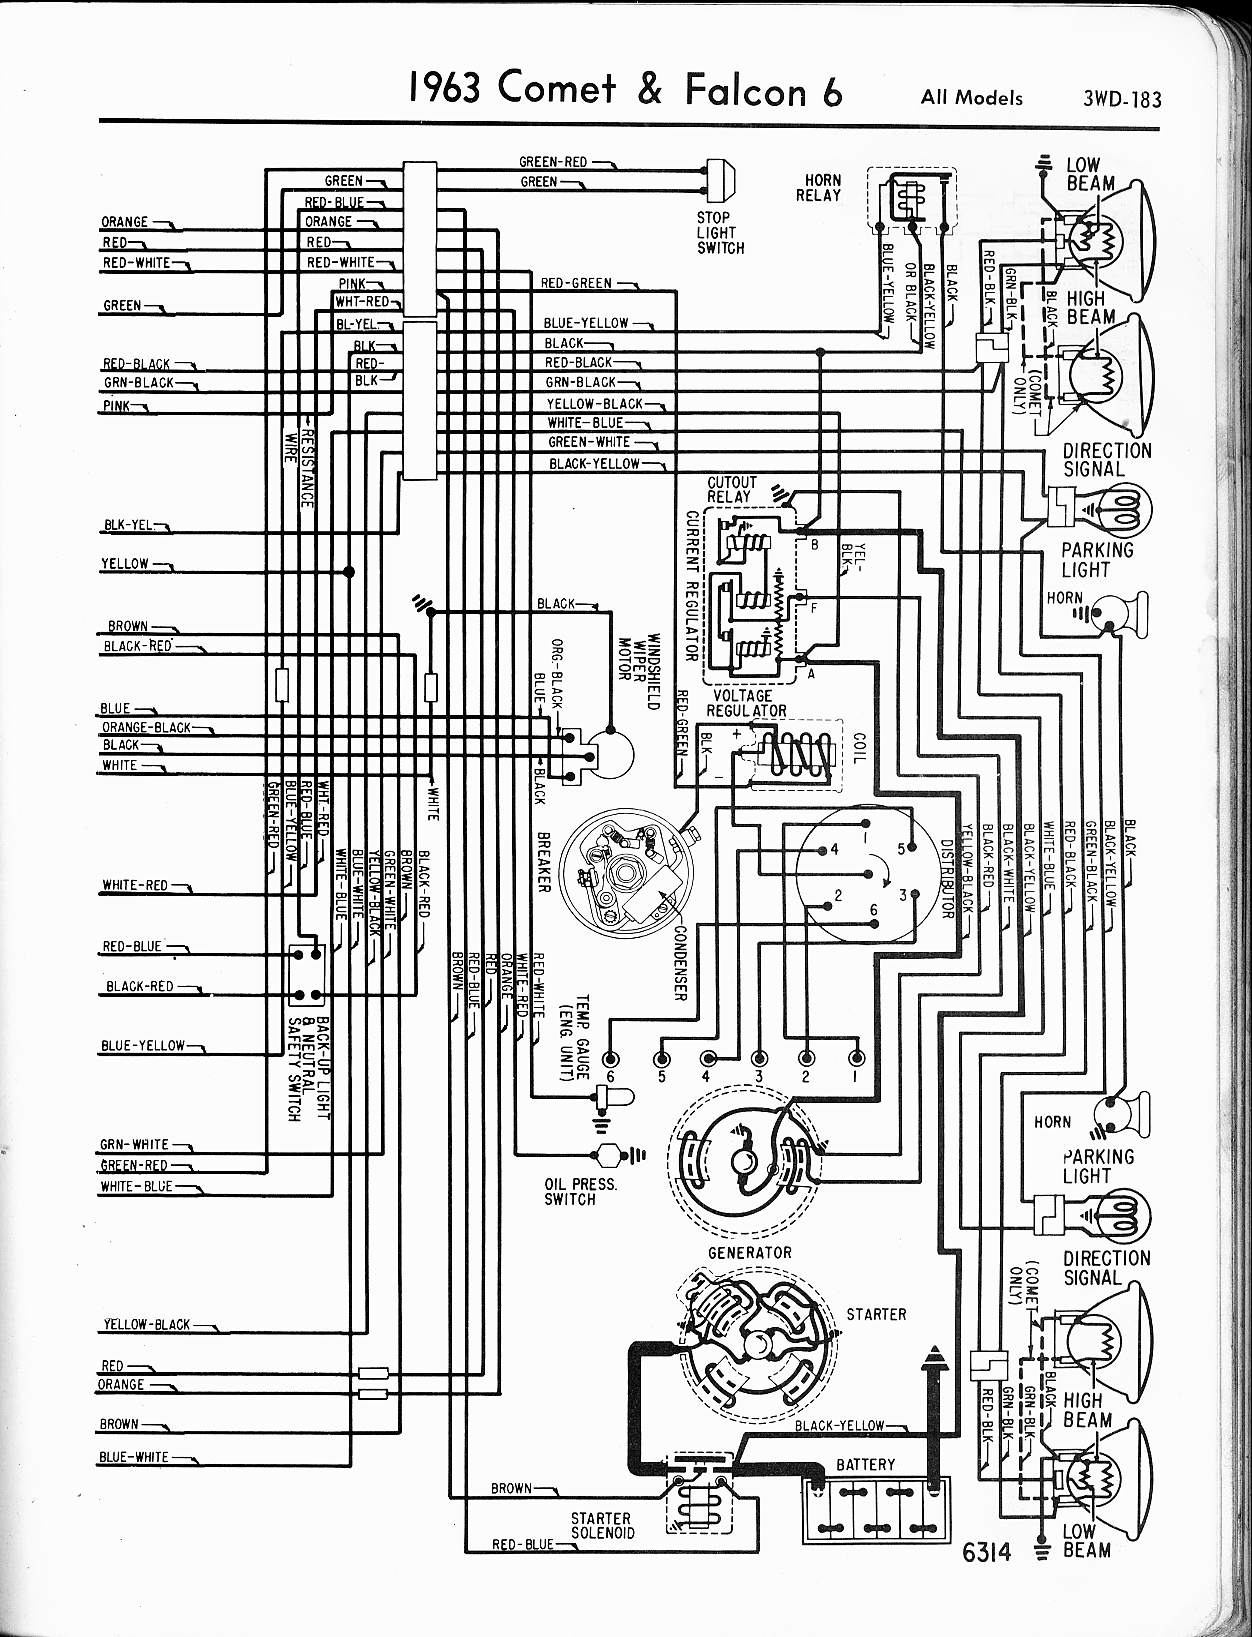 57-65 Ford Wiring Diagrams | Wiring Schematic For 1963 Ford F100 |  | The Old Car Manual Project